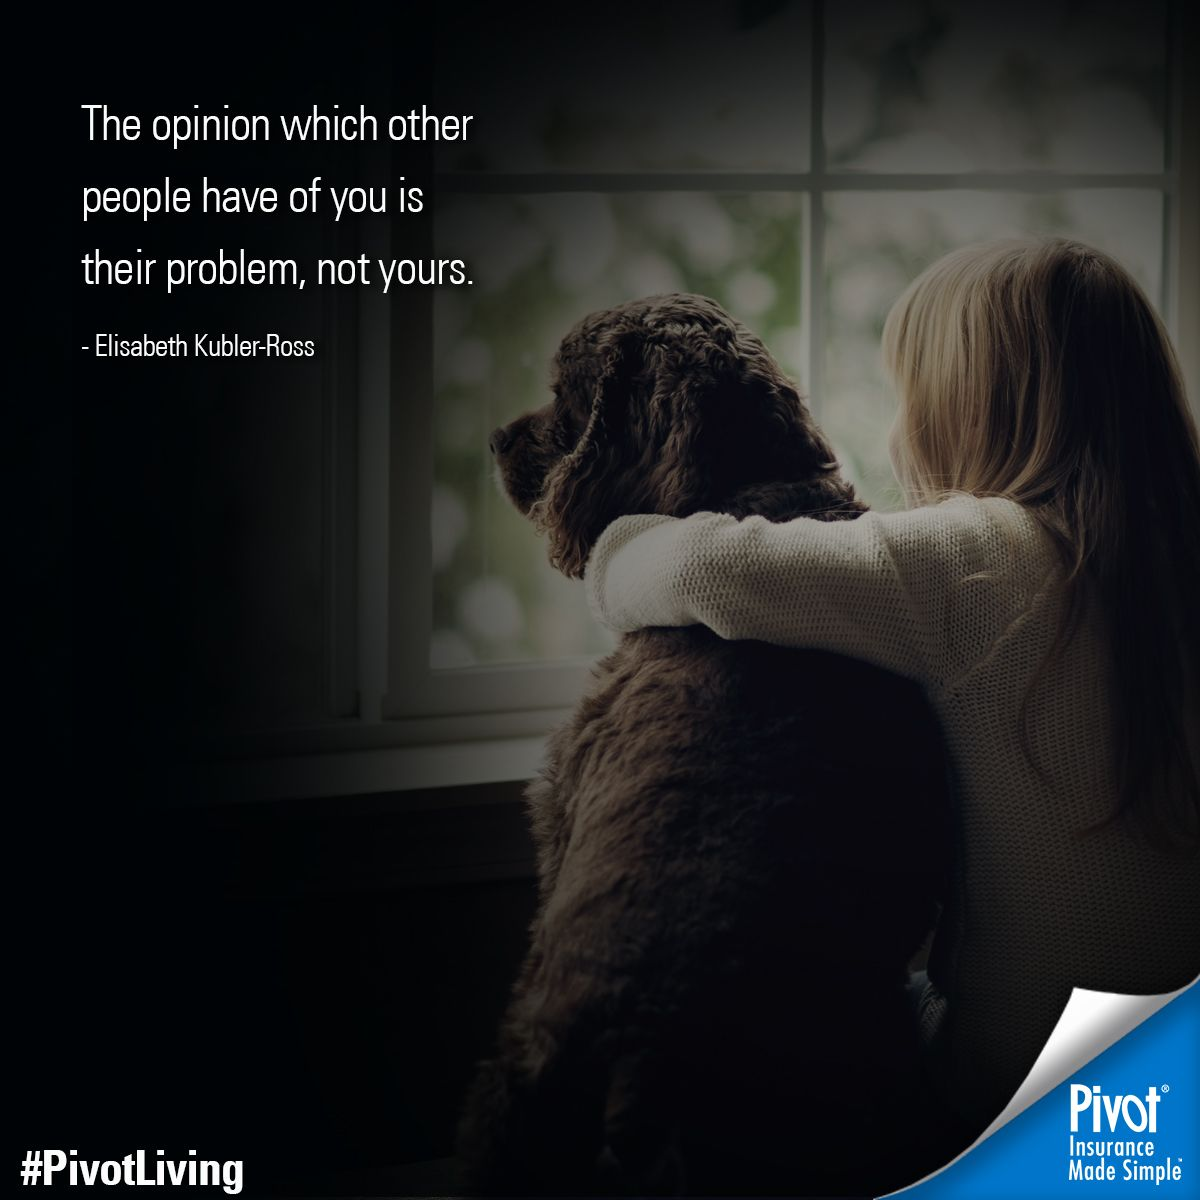 Don't let other people cause problems for you with their own opinions. #BeYourself #confident #PivotLiving ow.ly/WxCpT